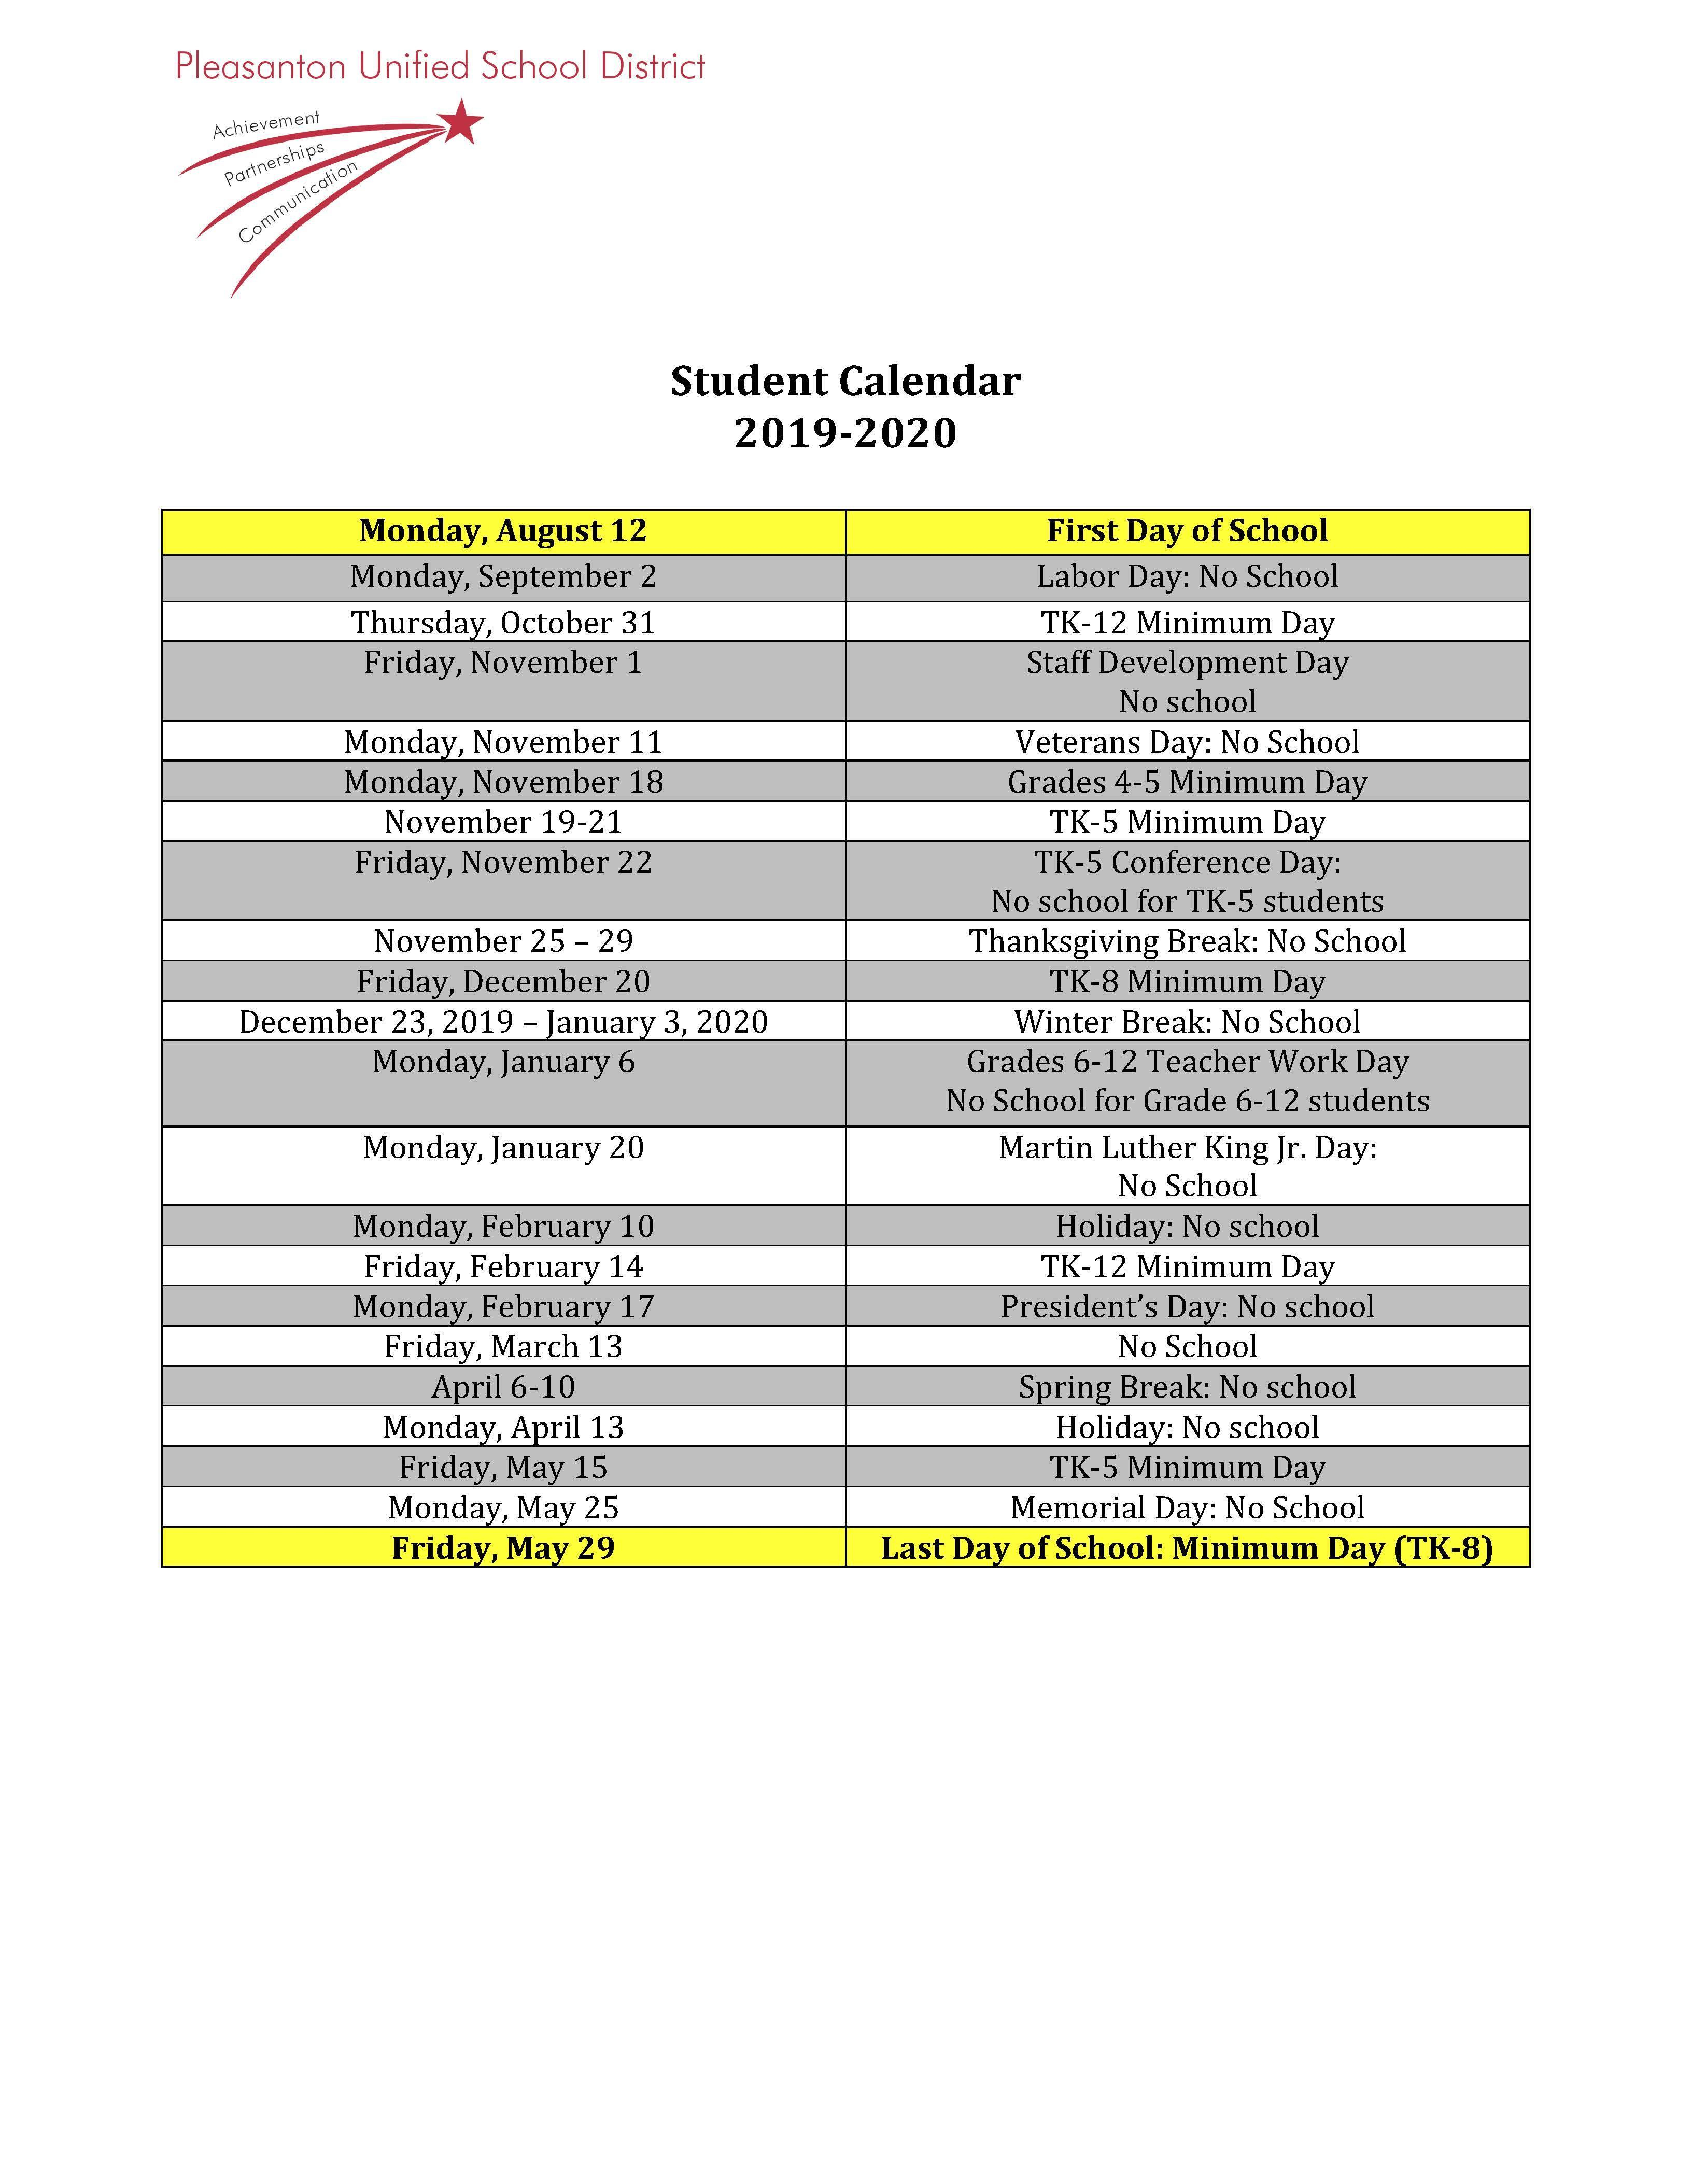 Calendars - Miscellaneous - Pleasanton Unified School District With Morgan Hill Unified School District Calendar